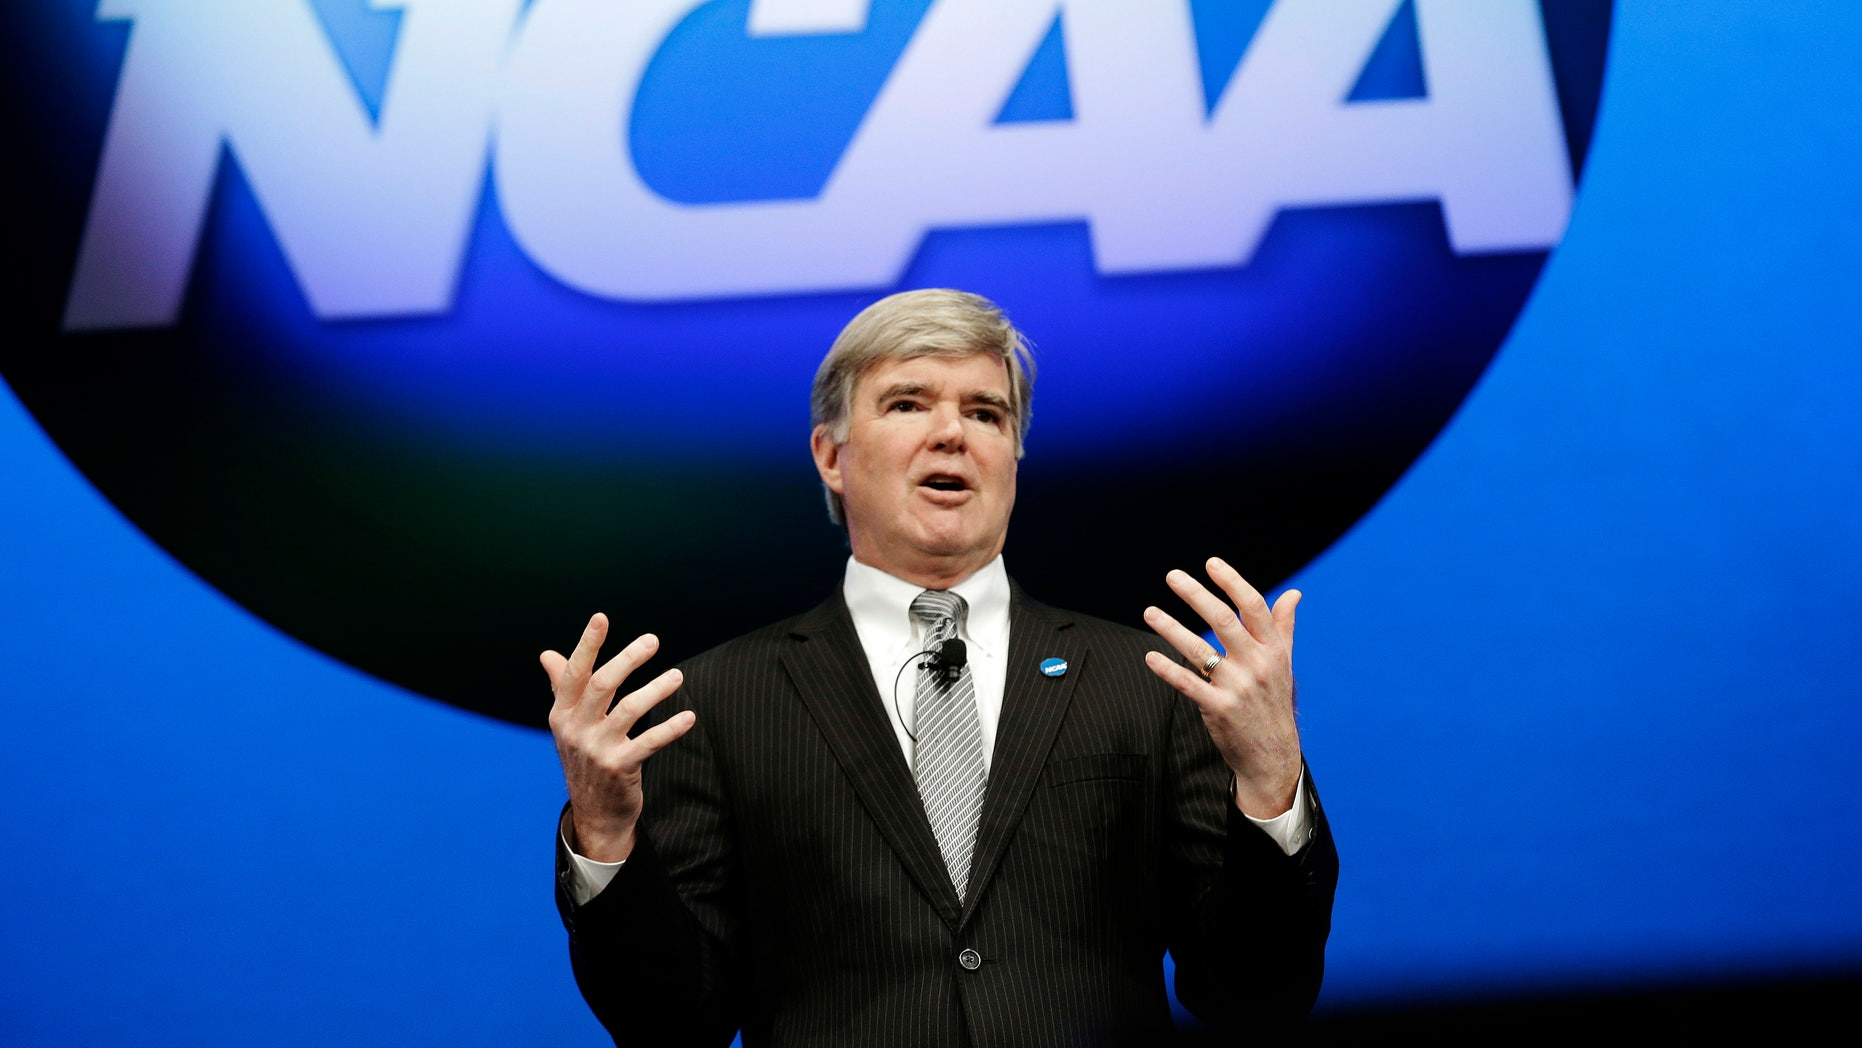 """FILE - In this Jan. 17, 2013, file photo, NCAA President Mark Emmert speaks at the organization's annual convention in Grapevine, Texas. The NCAA is revealing that it has found """"an issue of improper conduct"""" within its own enforcement program during its investigation into the compliance practices of Miami's athletic department.  Emmert has ordered an external review of the enforcement program. Miami will not receive its notice of allegations until that review is complete. (AP Photo/LM Otero, File)"""